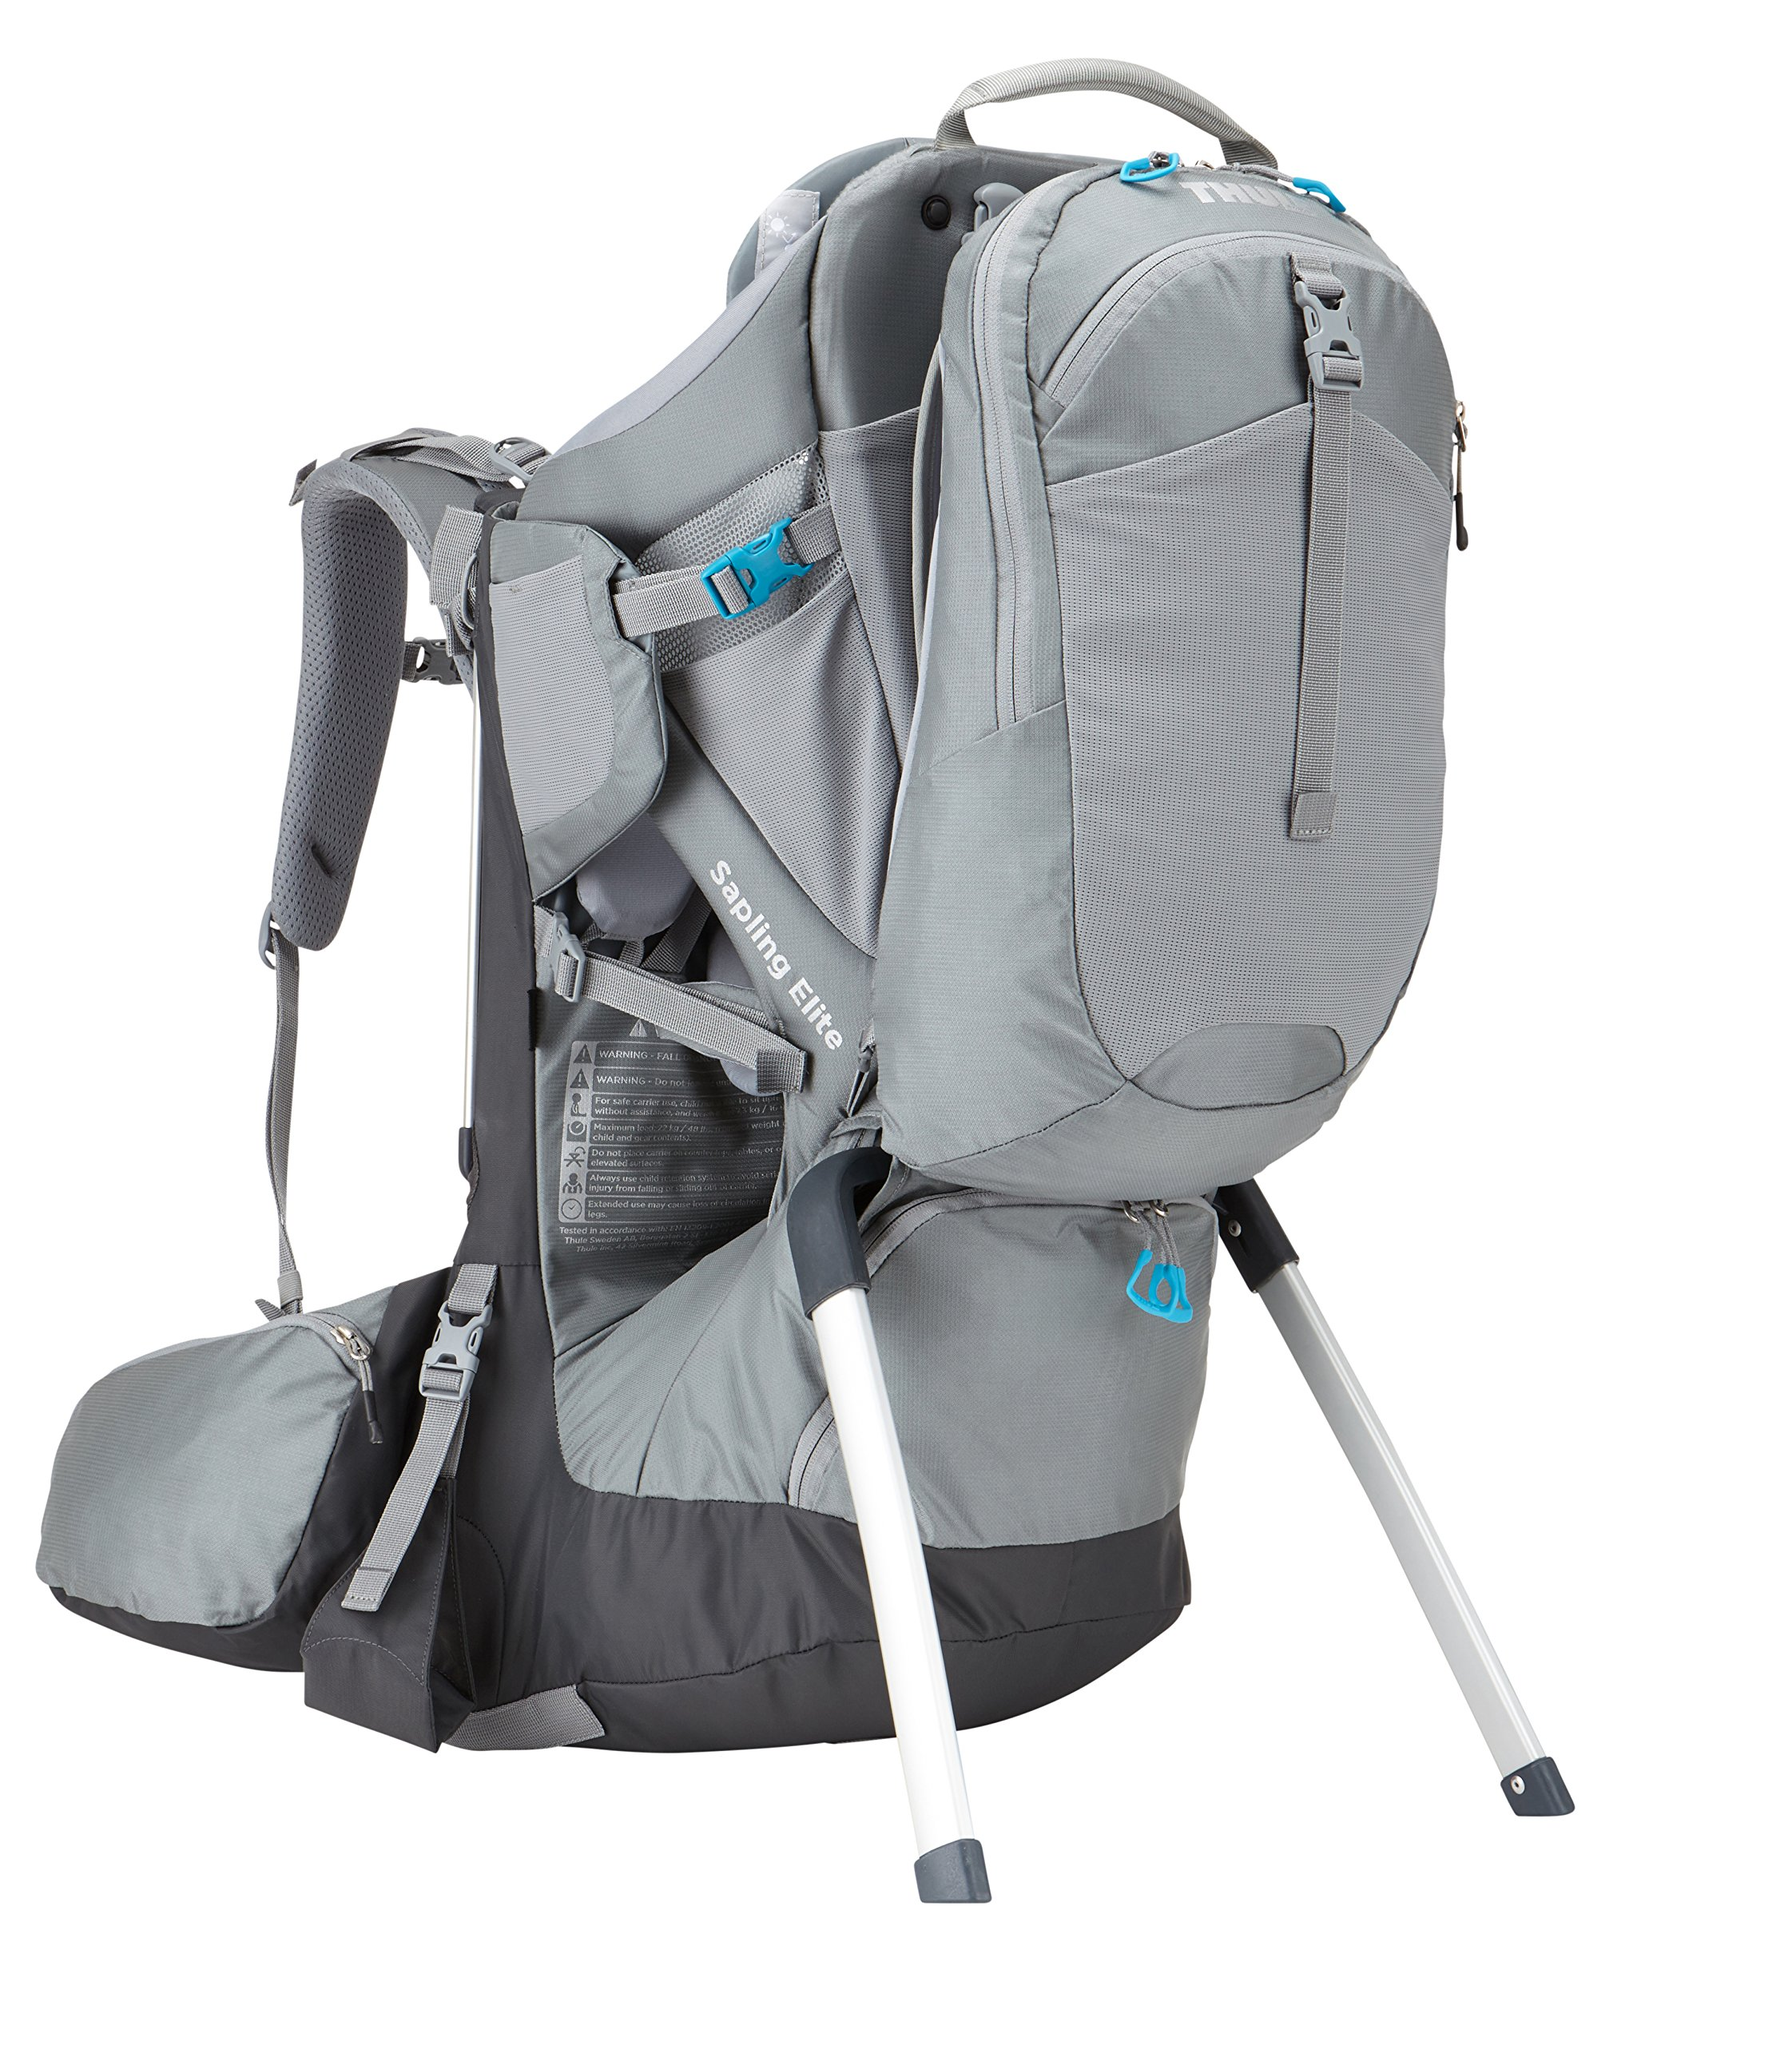 Thule Sapling Elite Child Carrier  Removable backpack and large zippered compartment store diapers, clothes and other gear Fully adjustable back panel and hip belt make the transition between parents quick and easy, Plush, height adjustable, ergonomic seat efficiently distributes the child's weight by providing inner thigh support Breathable back panel allows air to circulate around your back 2